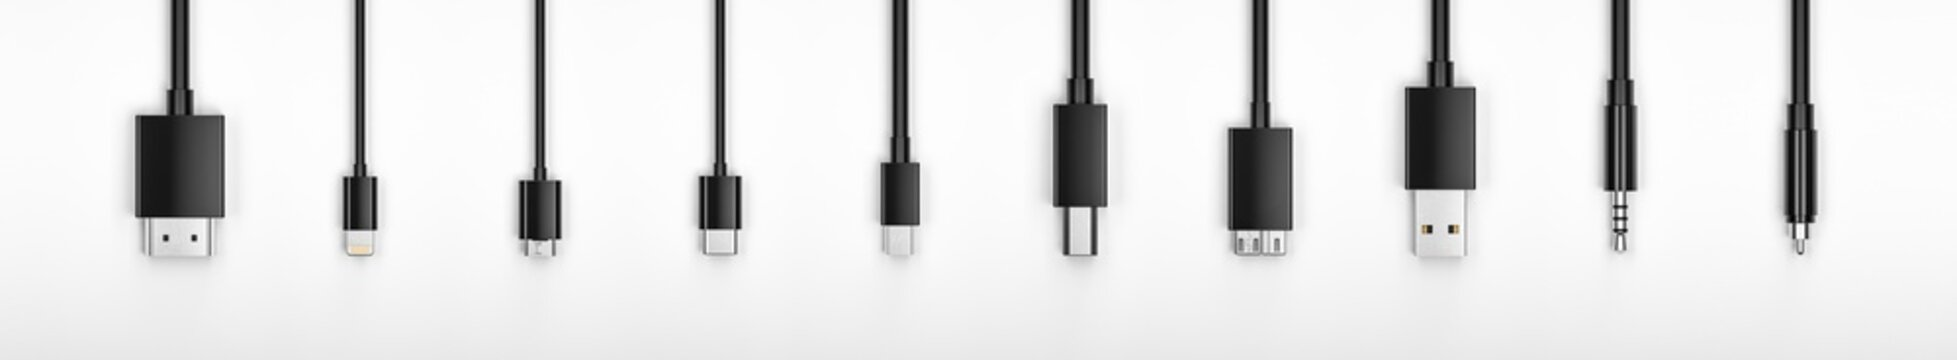 Black Realistic hdmi , 8-pin, micro usb, usb, Type C, type B mini jack 3.5, cable on White Background. 3d rendering